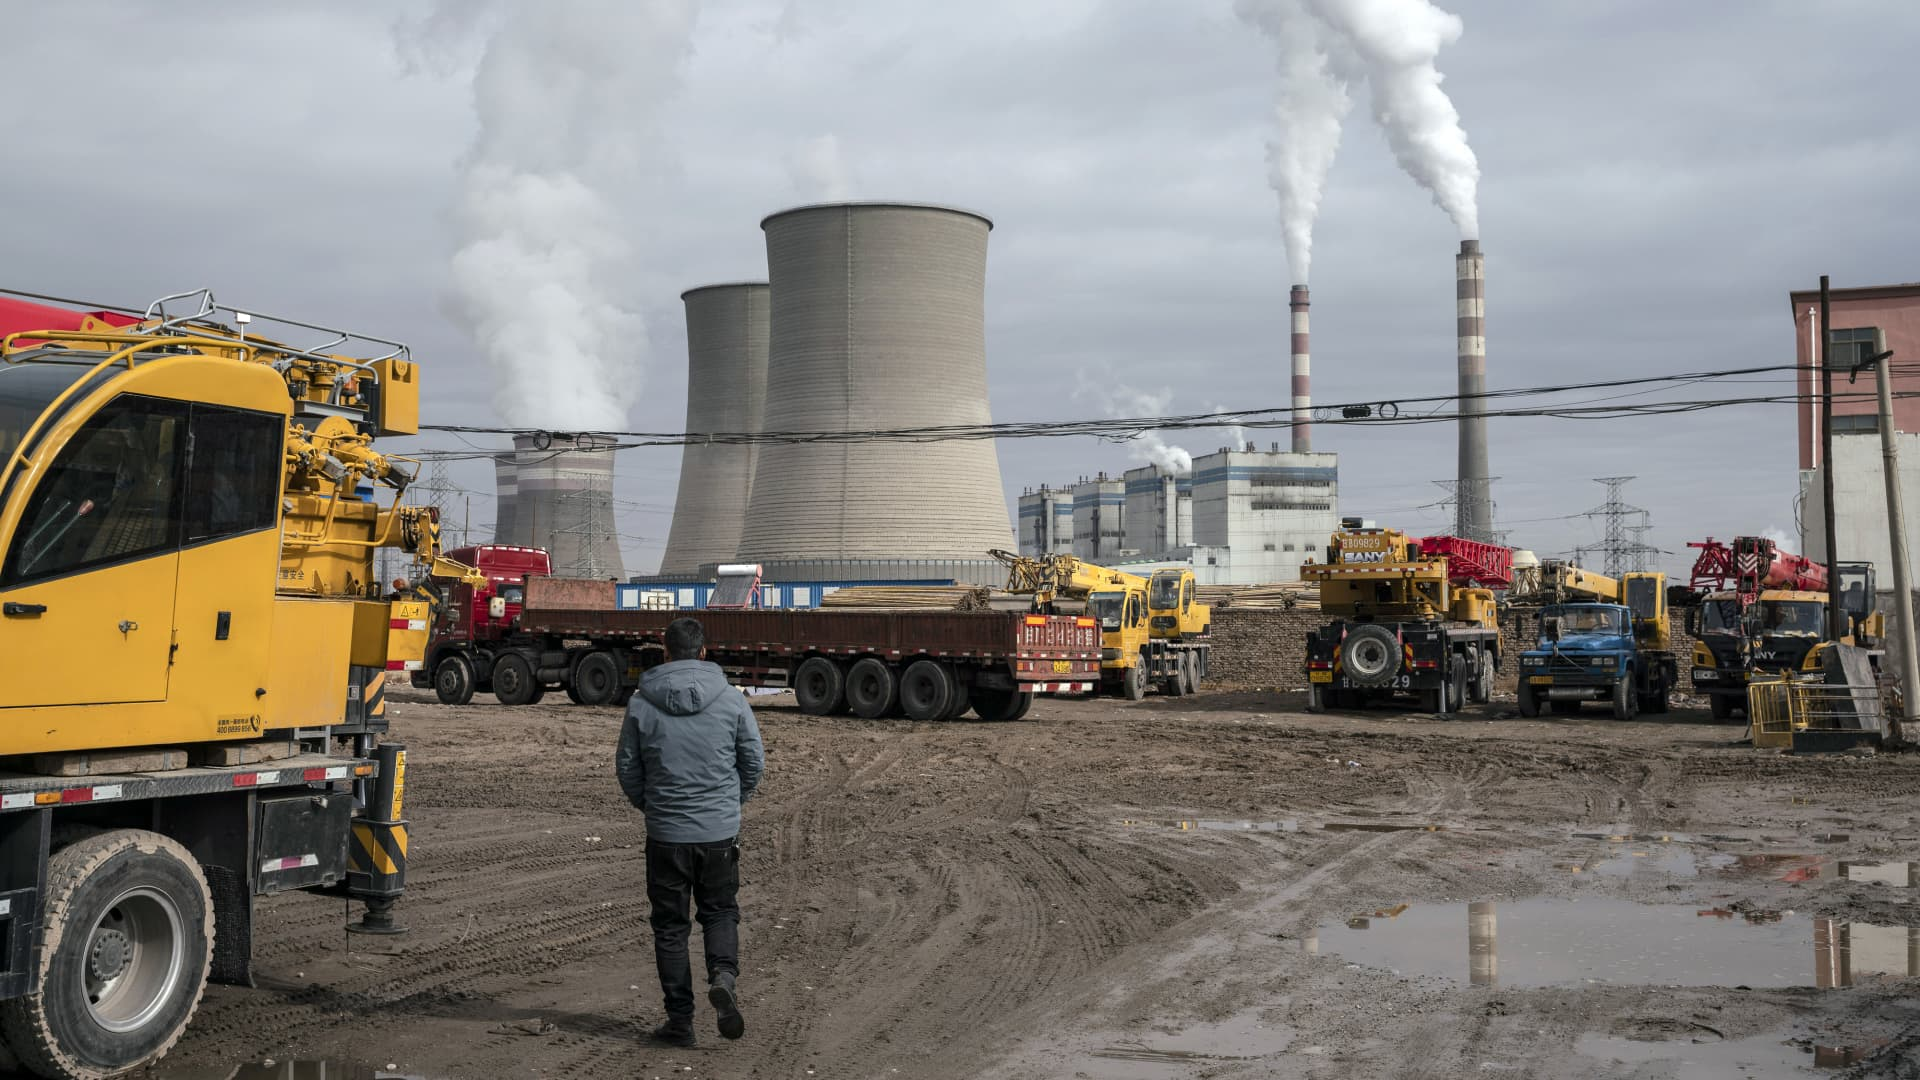 A person walks past a coal fired power plant in Jiayuguan, Gansu province, China, on Thursday, April 1, 2021.